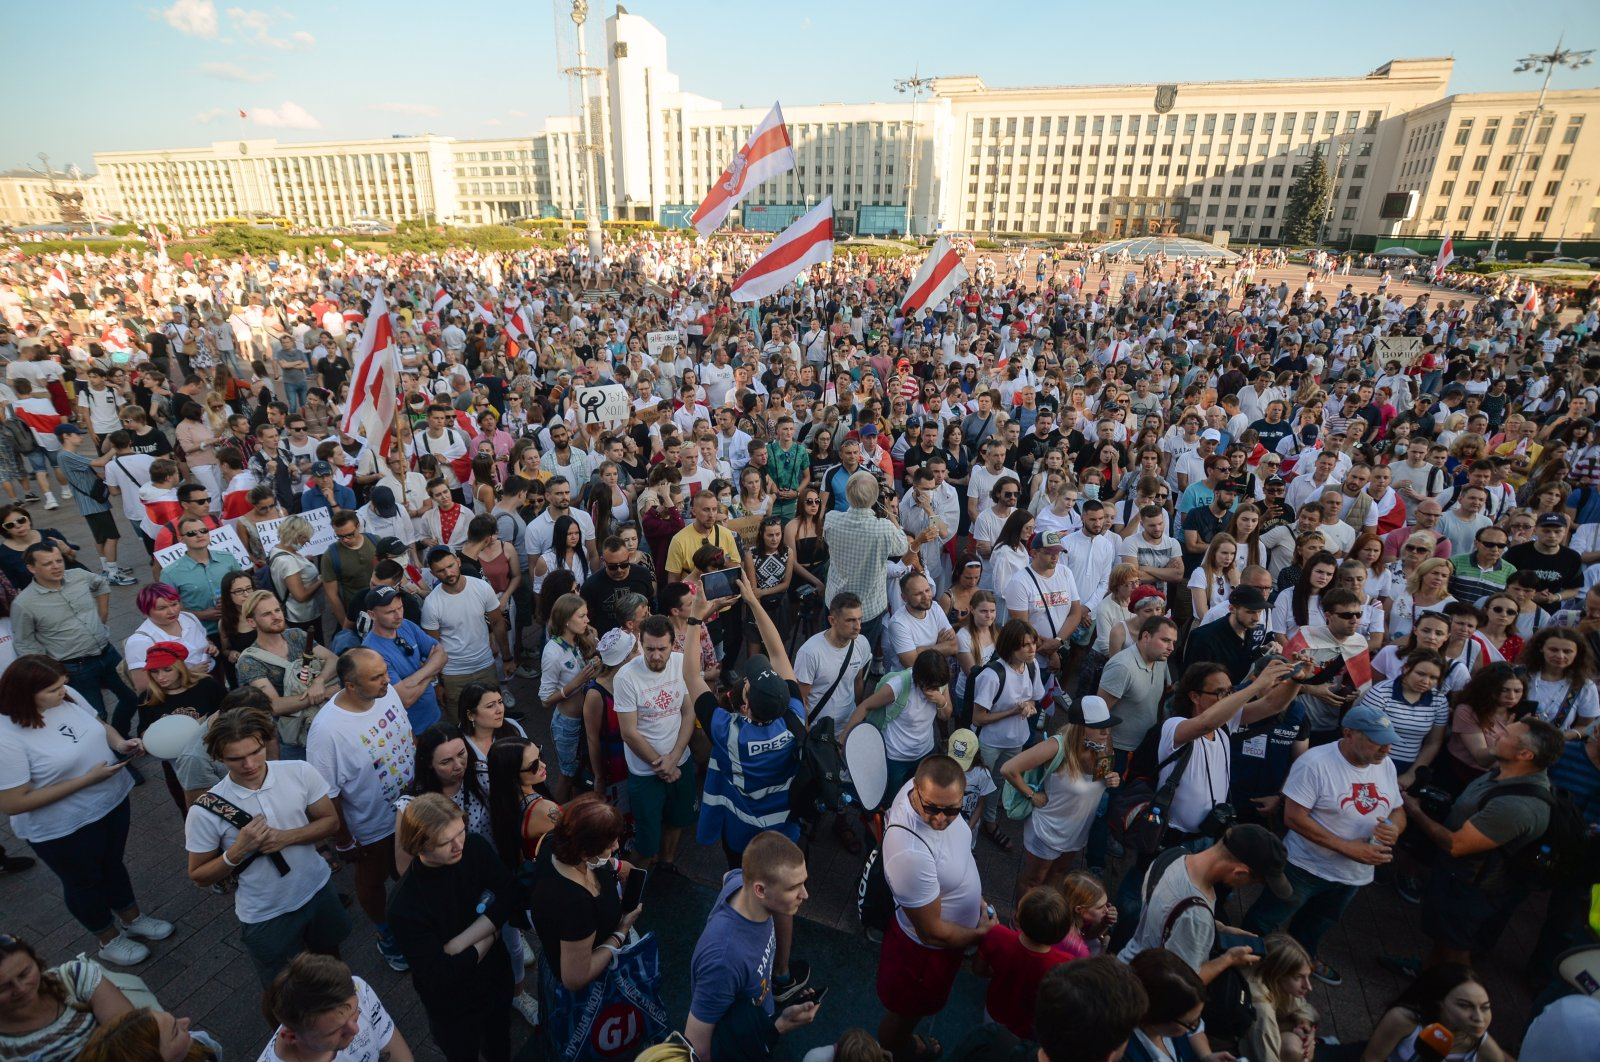 Opposition supporters take part in a protest rally in the capital Minsk, Belarus, Aug. 17, 2020. (EPA Photo)